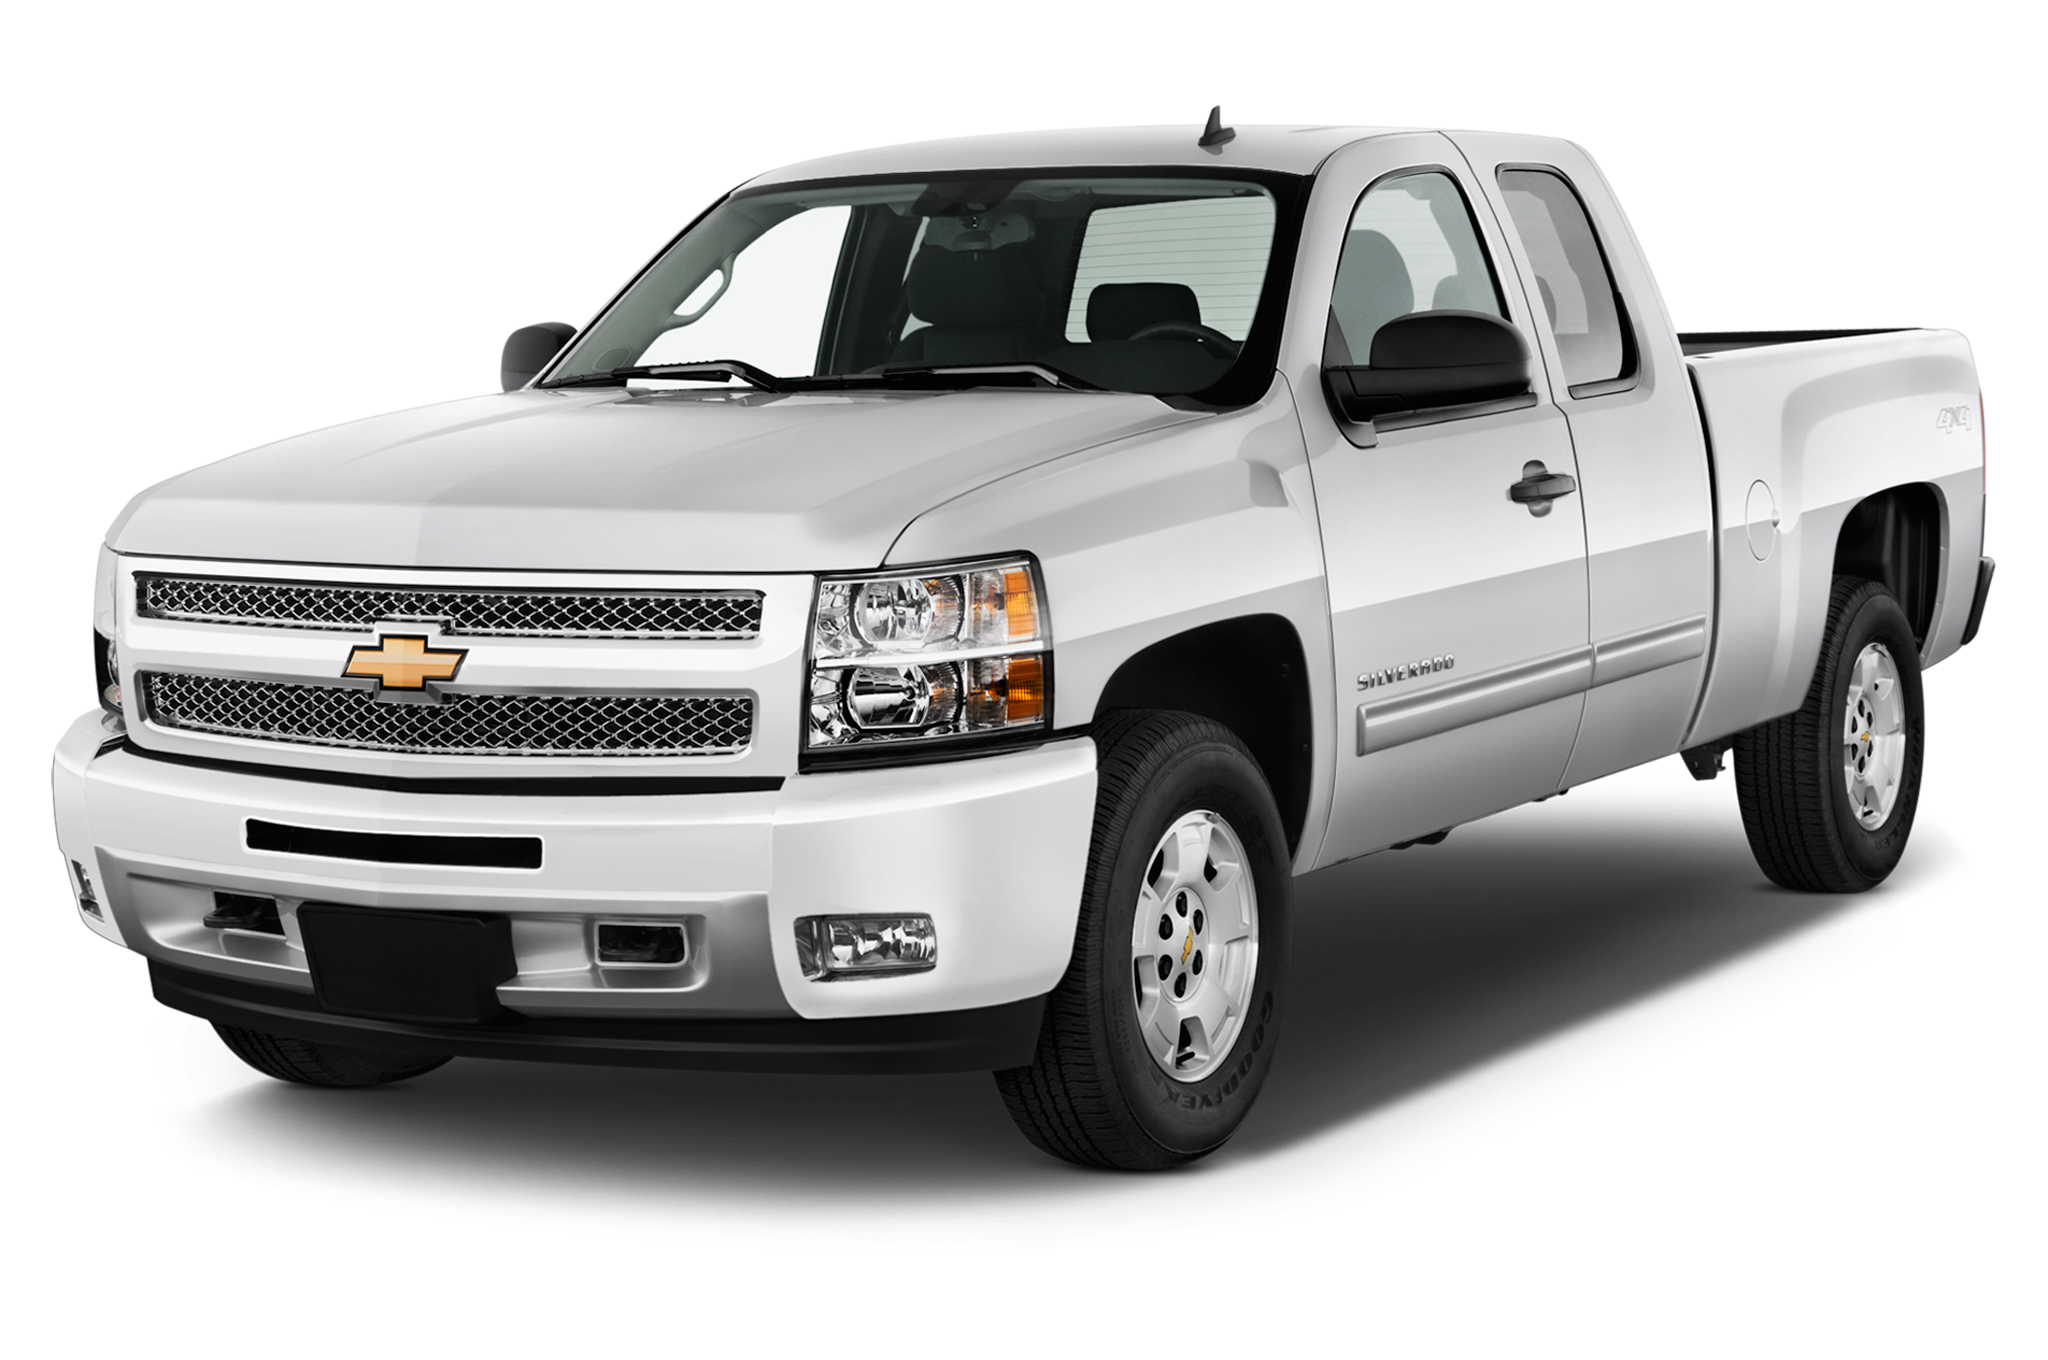 eastland chevrolet tx sale silverado vehiclesearchresults used vehicle for in vehicles photo